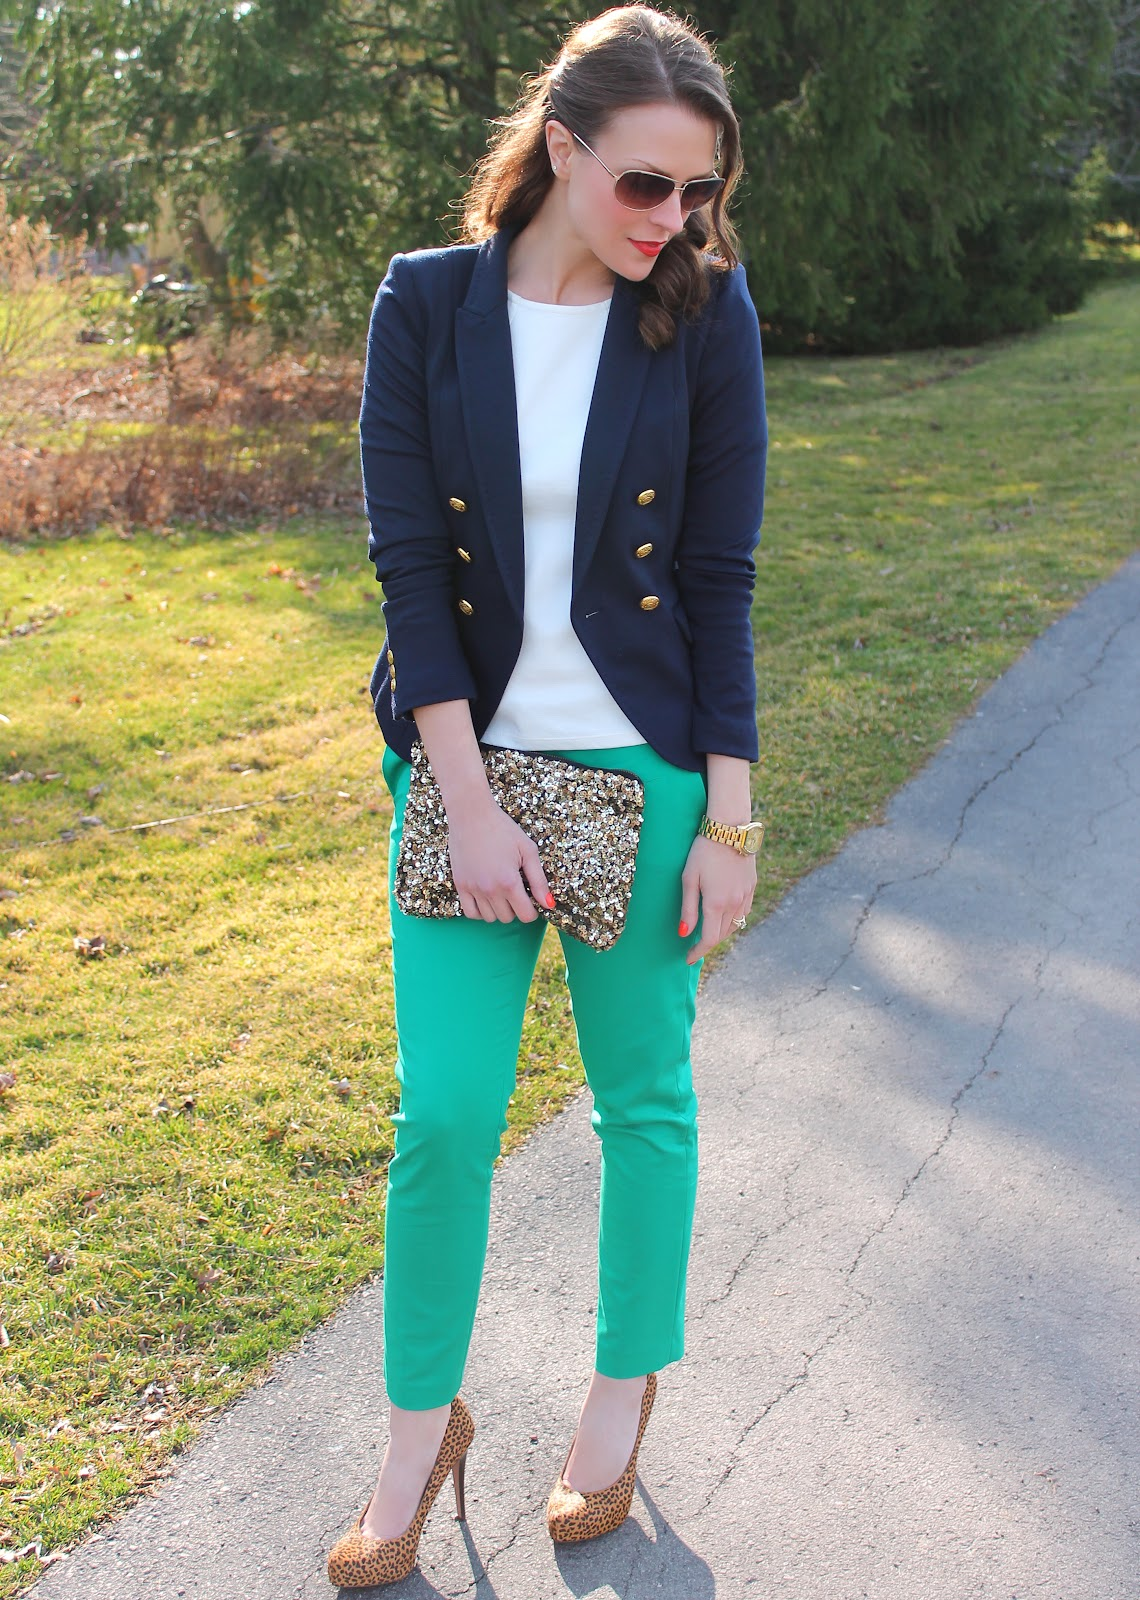 What to wear with green pants at work - 10 outfit ideas